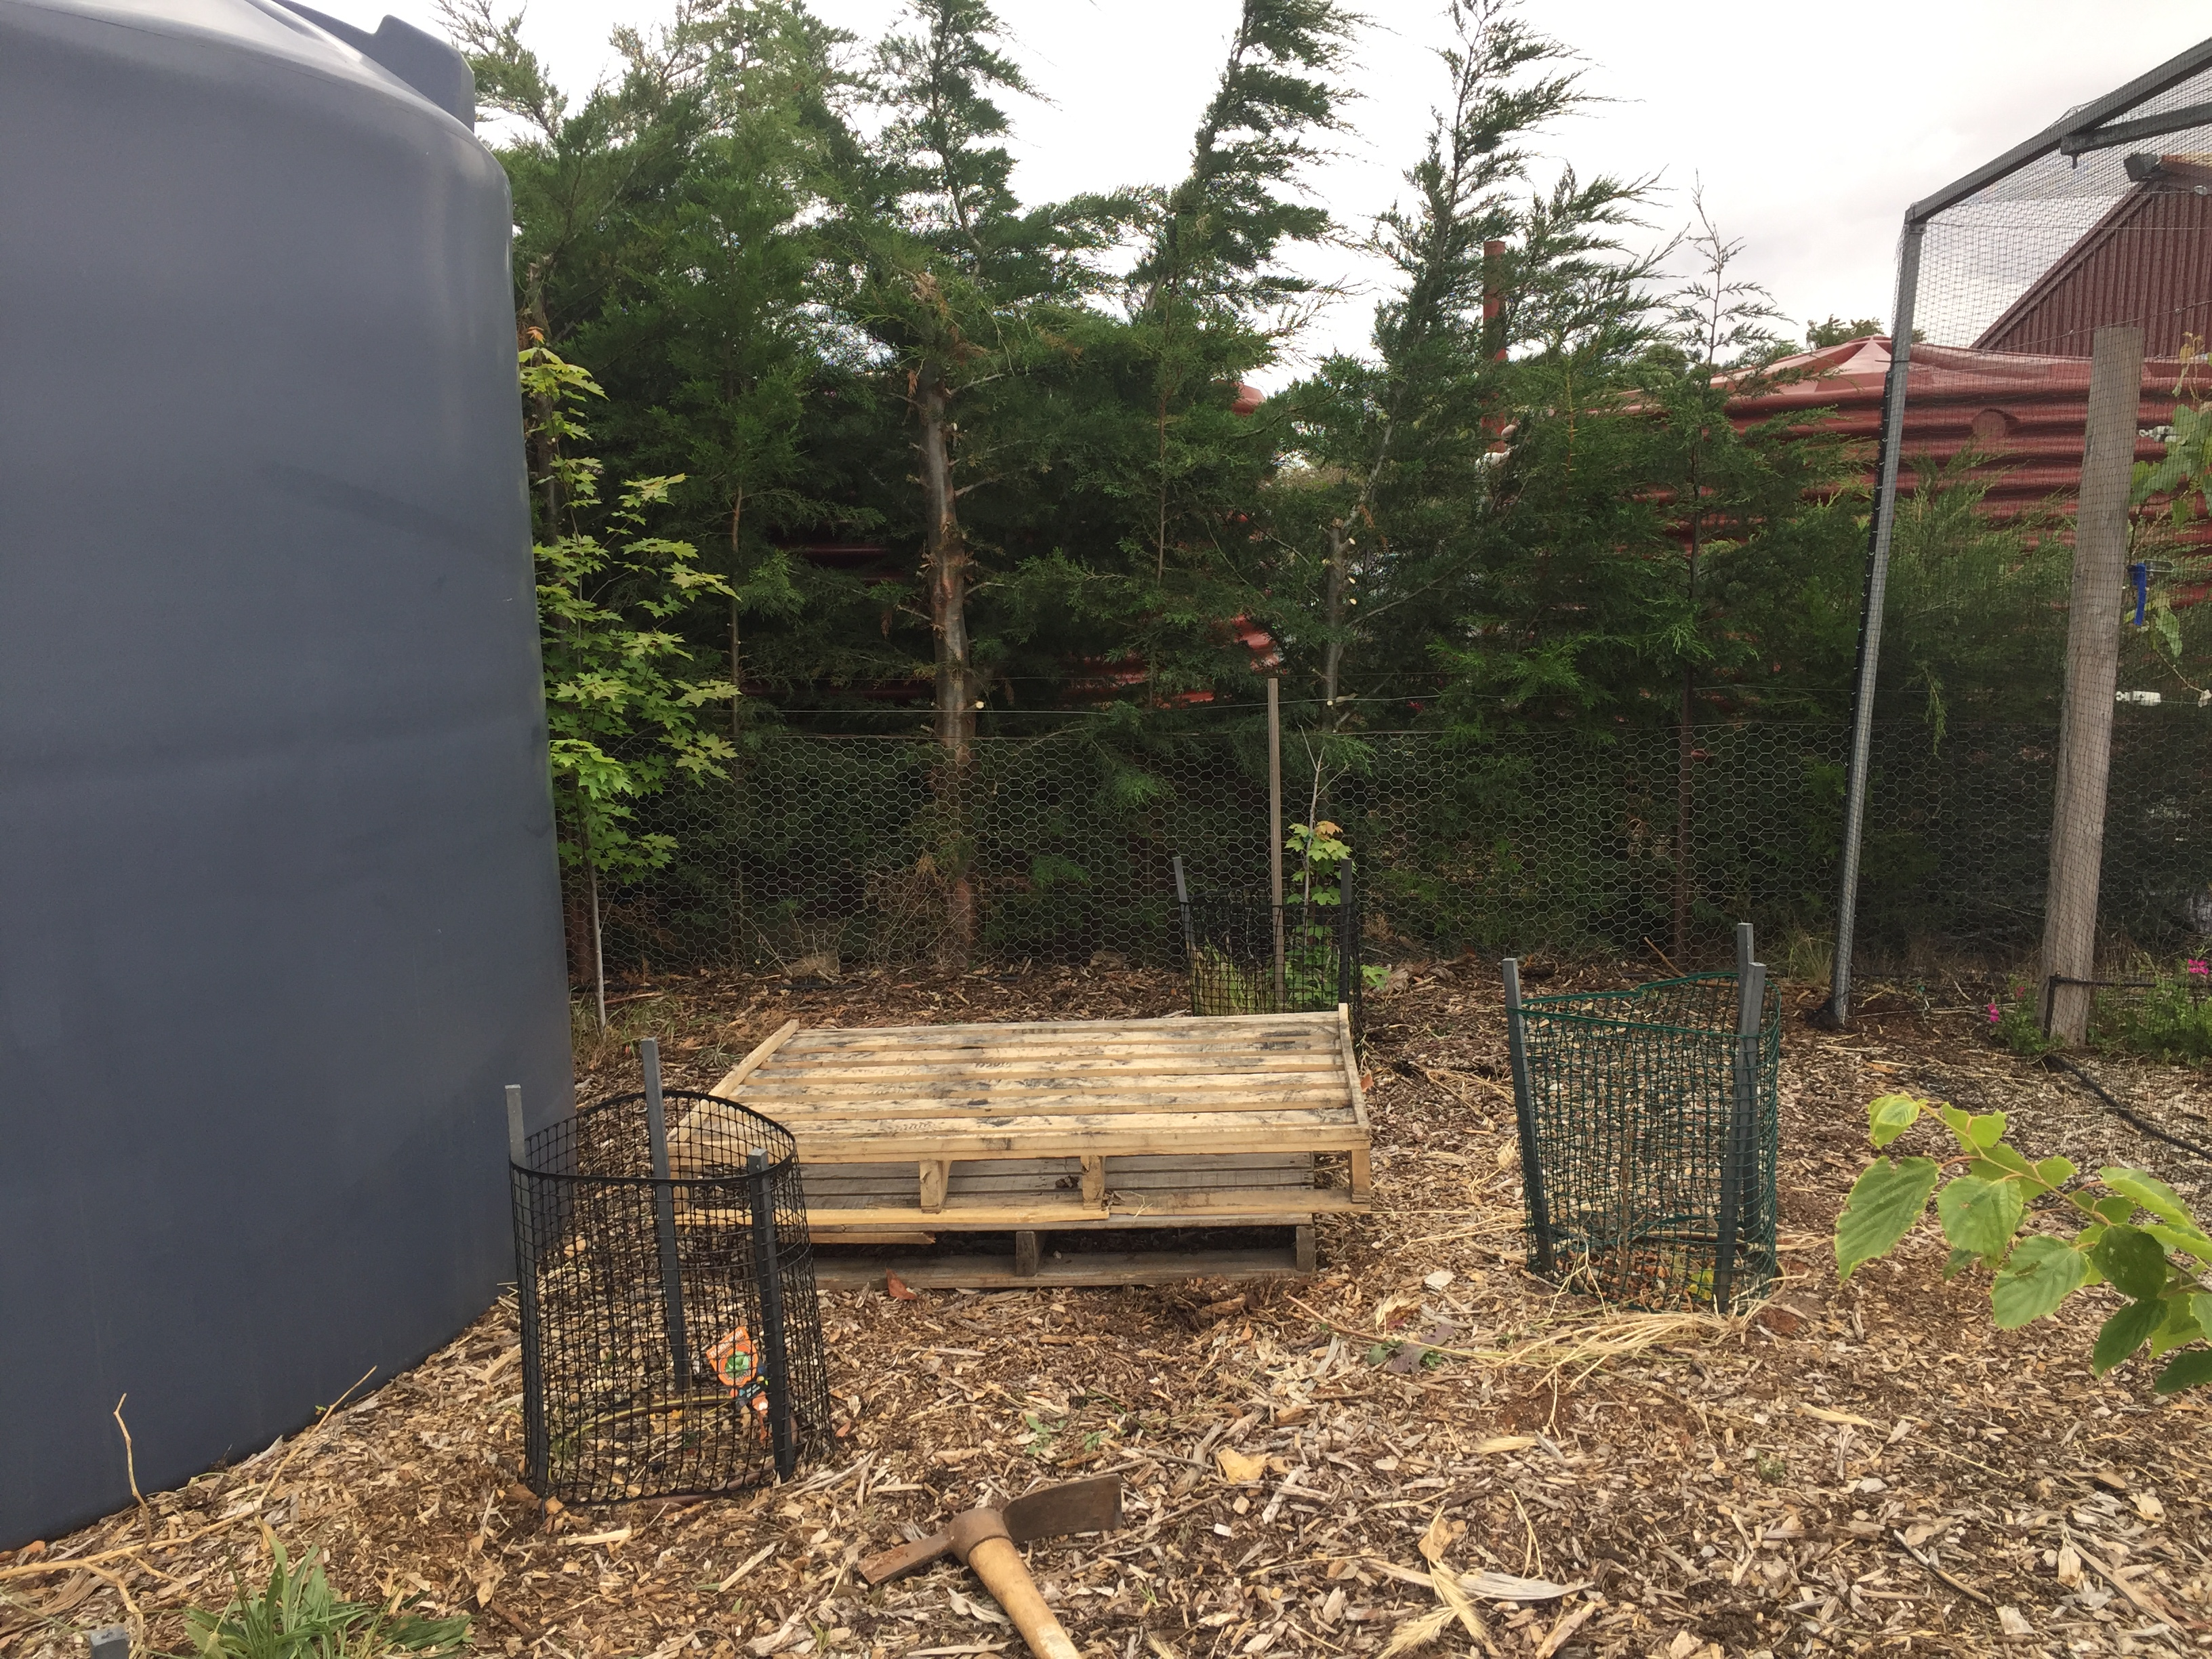 Bees – pallets